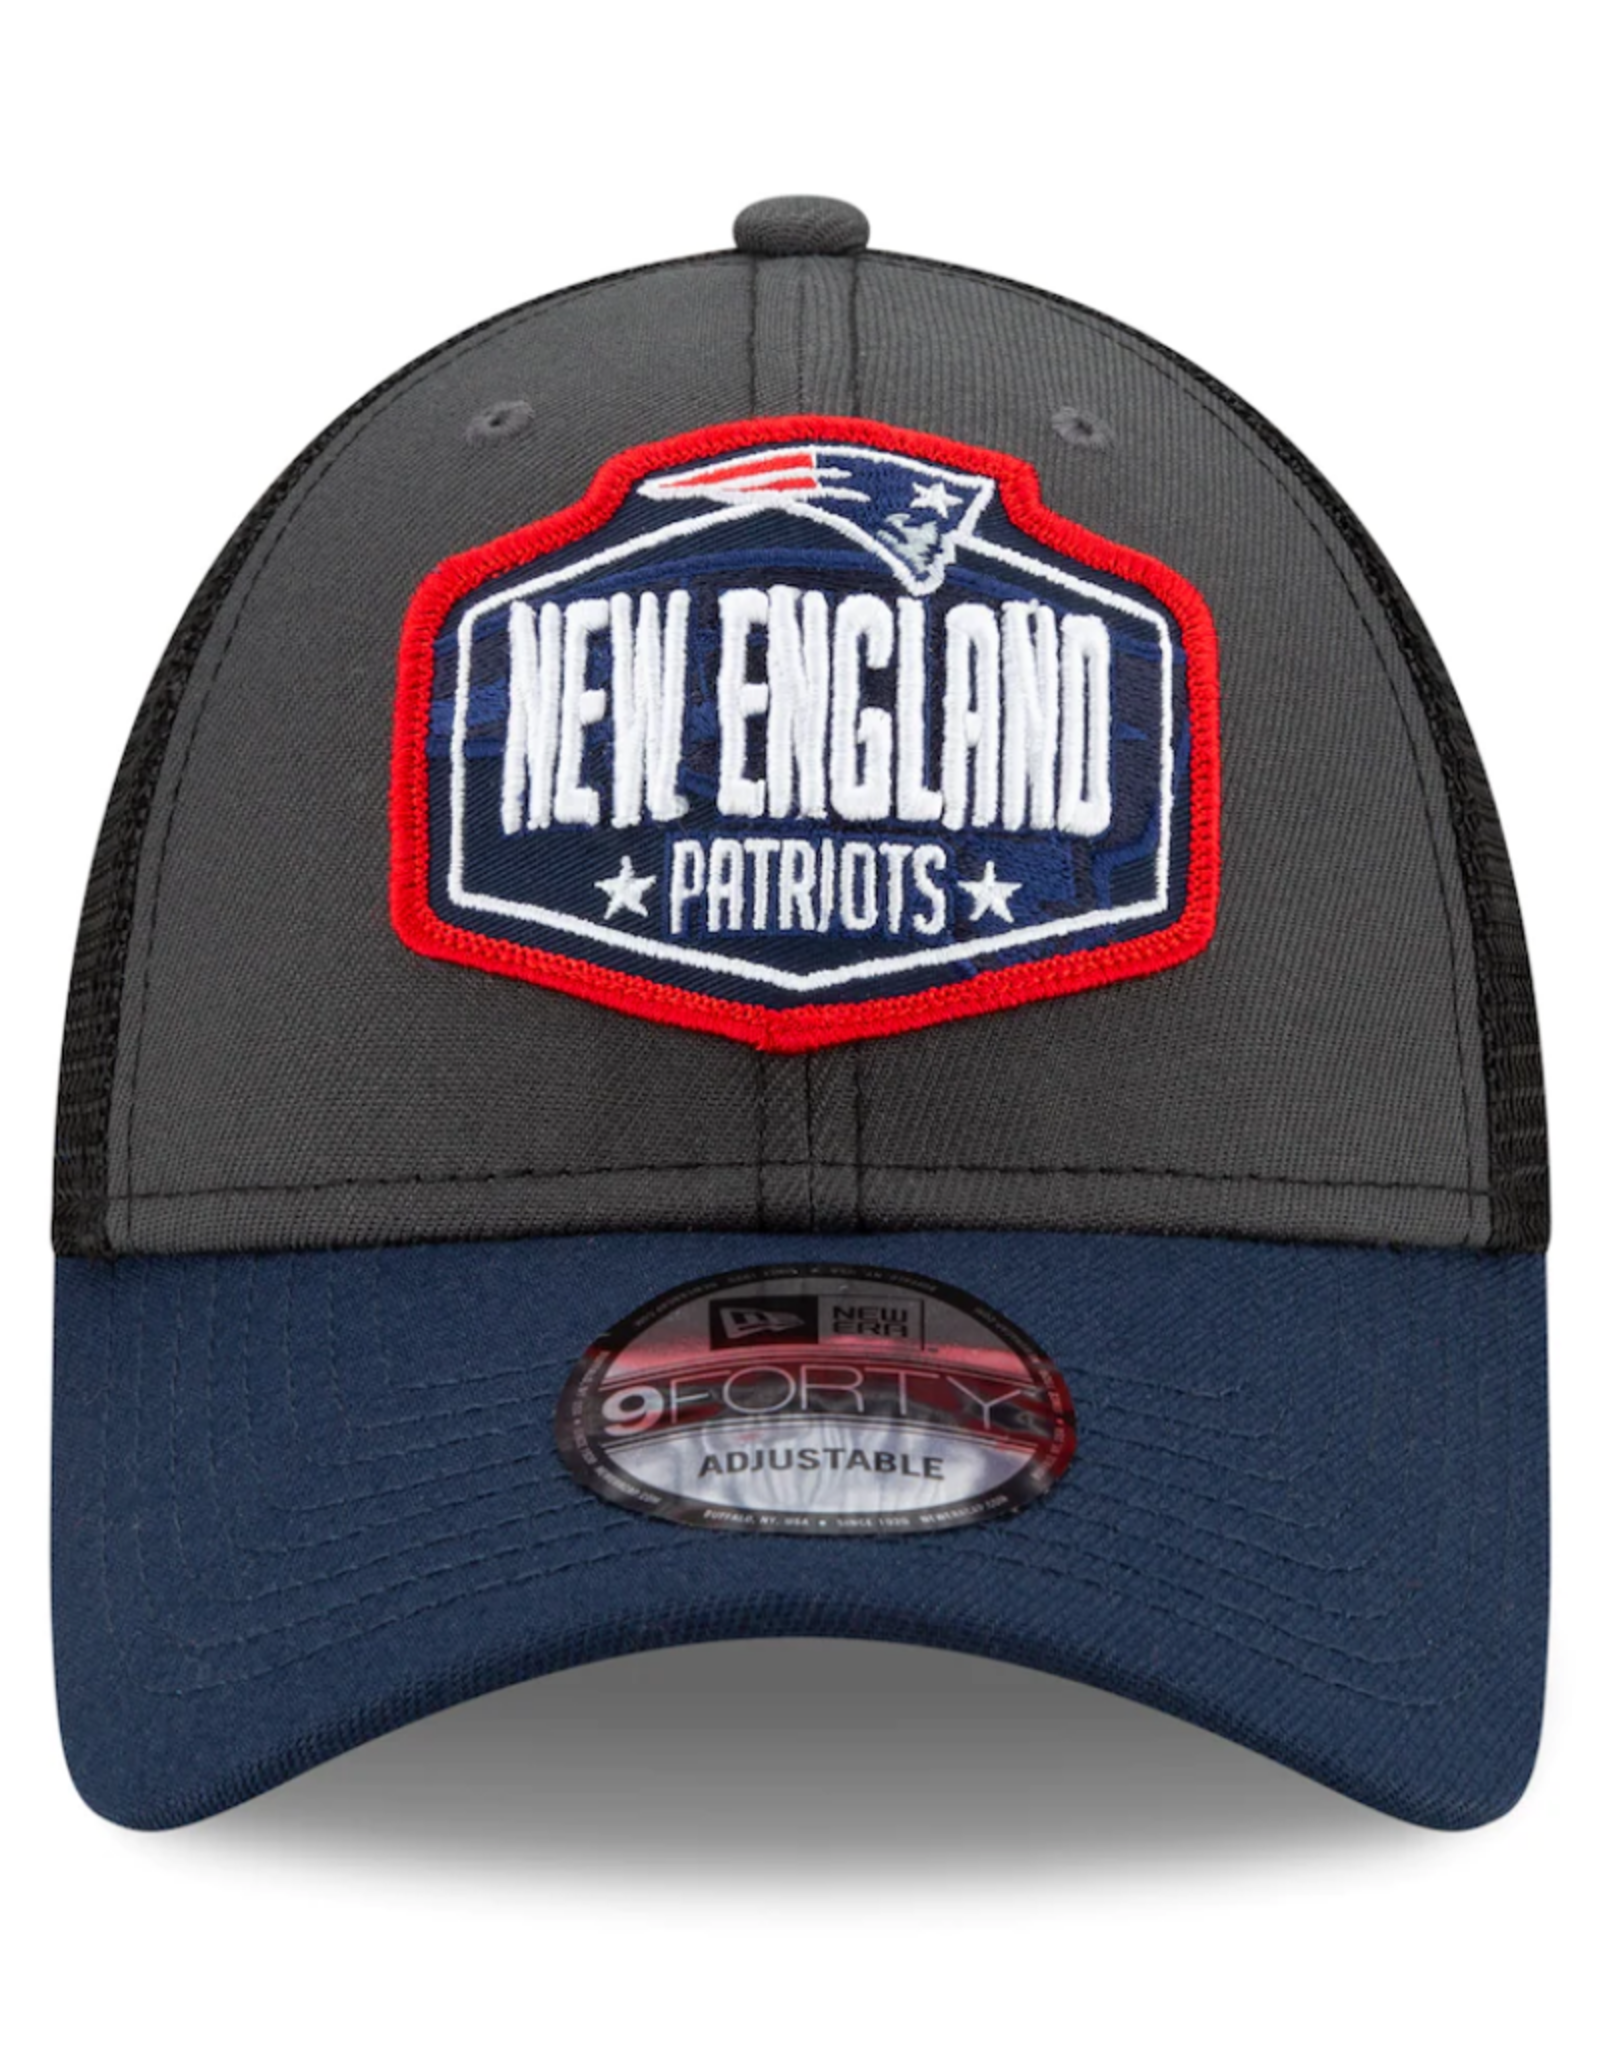 New Era Men's '21 9FORTY Adjustable NFL Draft Hat New England Patriots